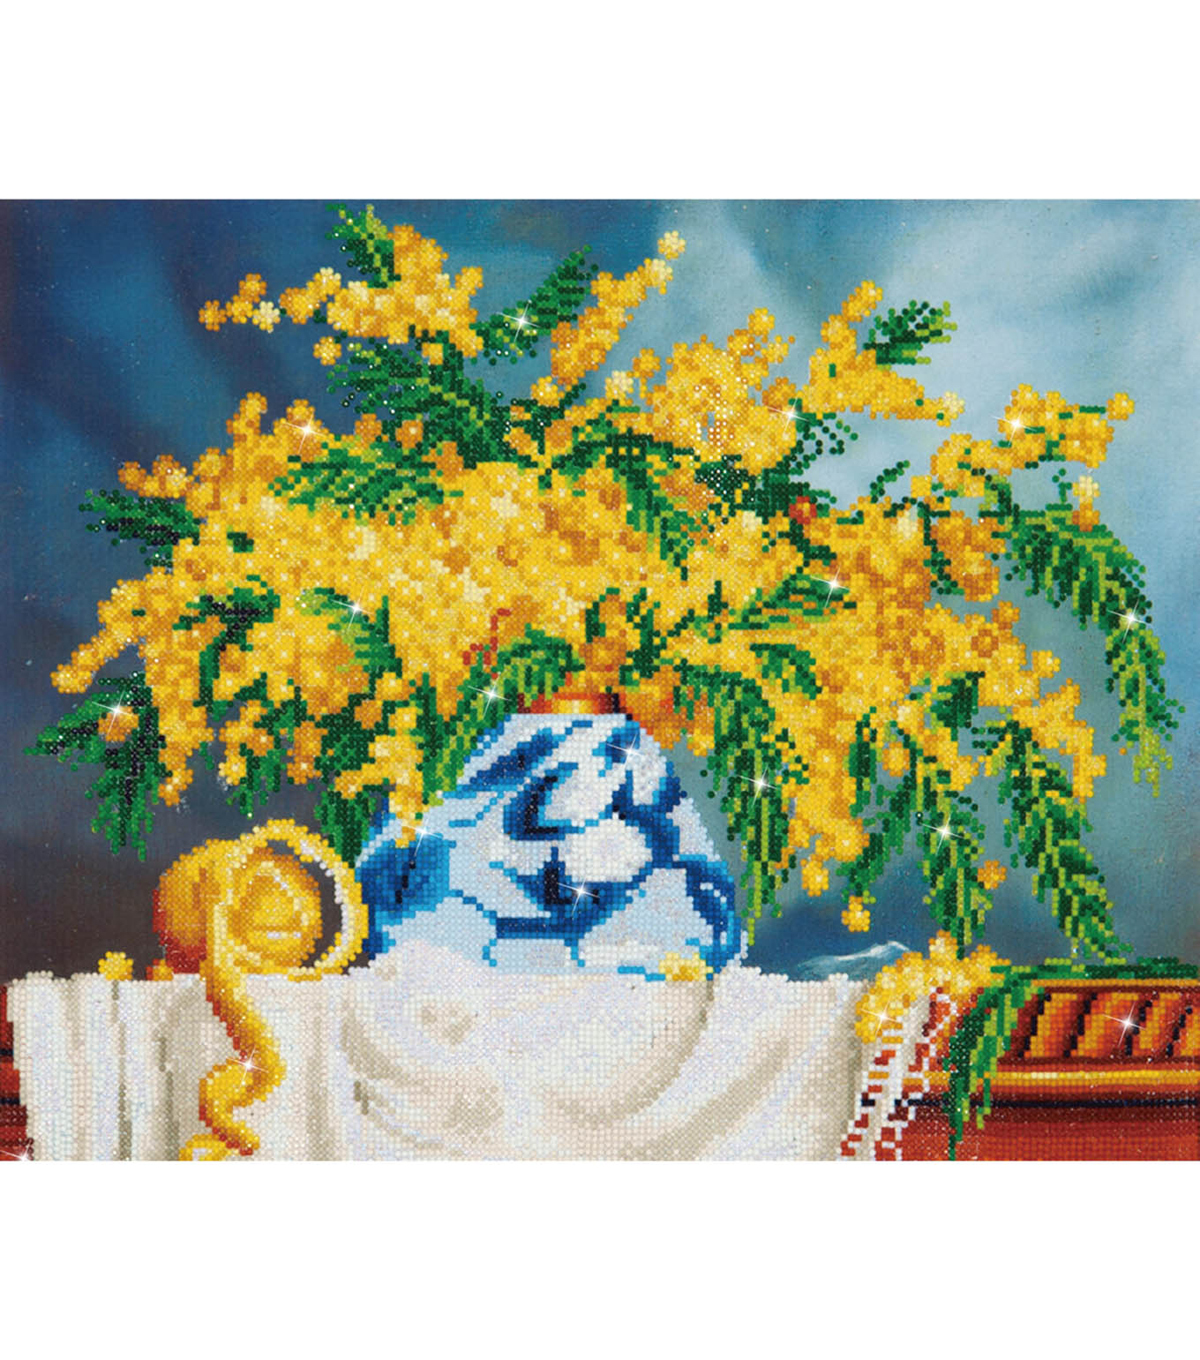 Diamond Embroidery Facet Art Kit 19.5\u0022X23.5\u0022-Native Wattle